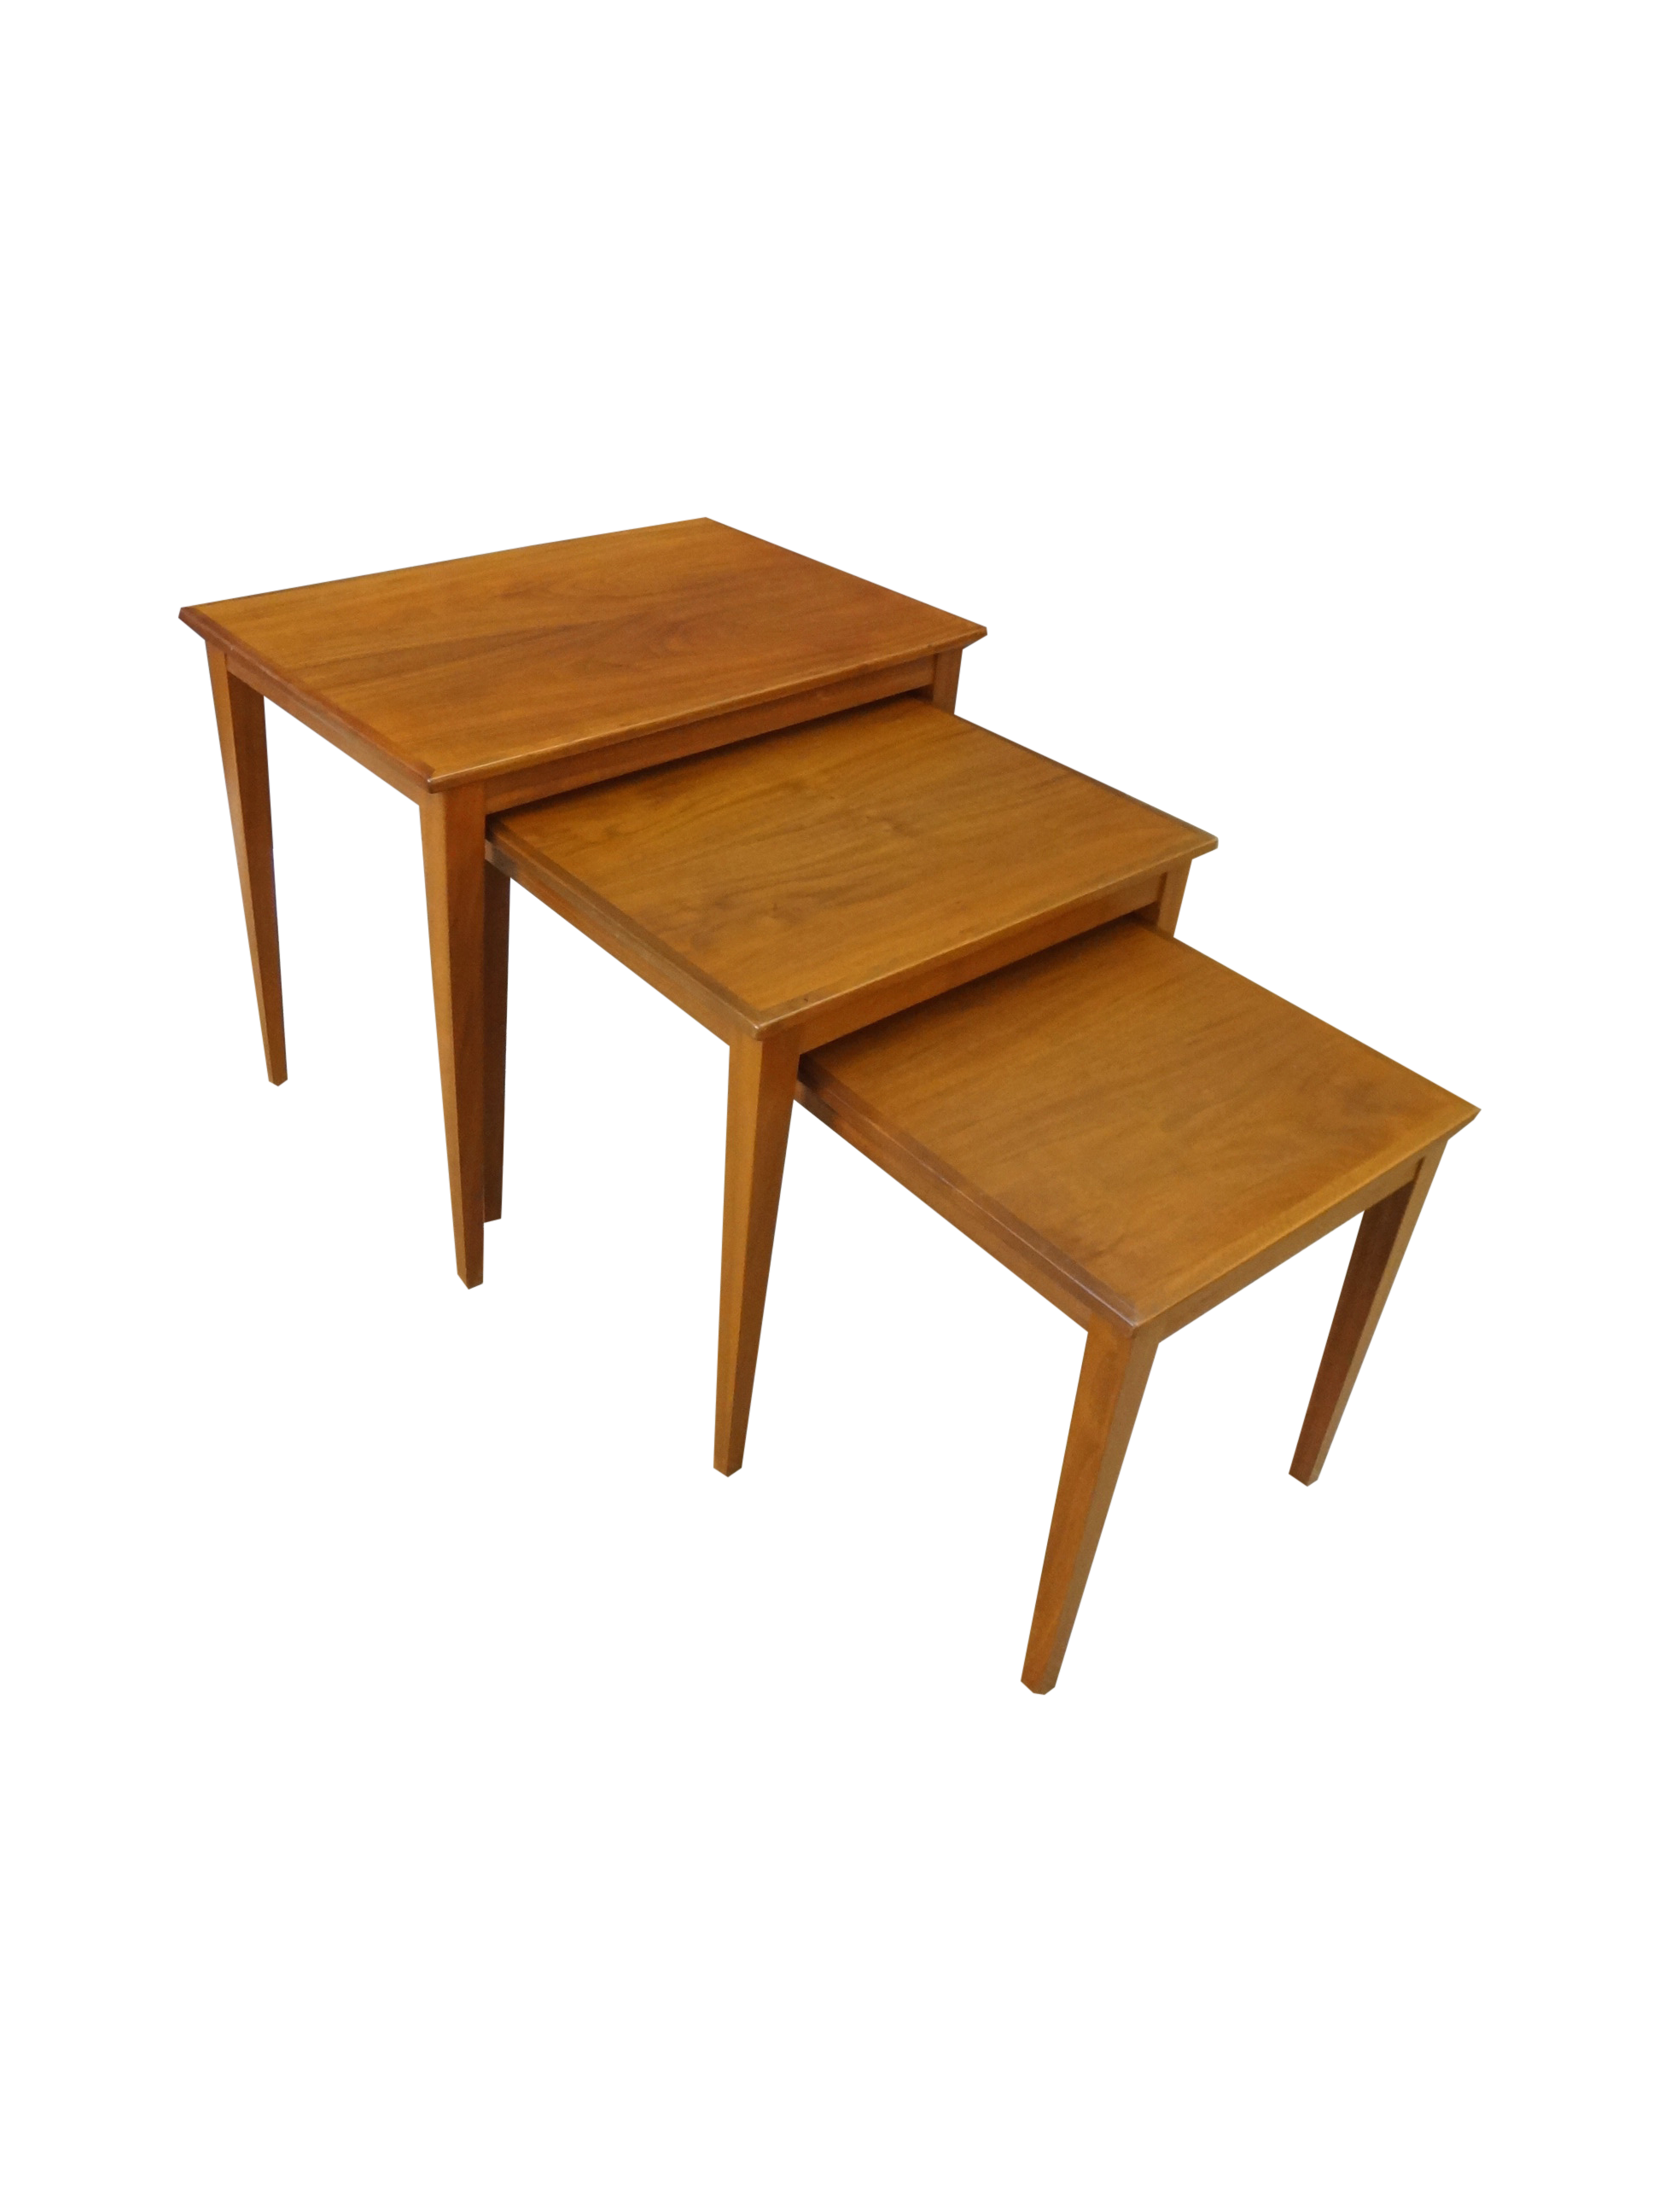 Danish Modern Teak Nesting Tables Chairish. Full resolution‎  image, nominally Width 1944 Height 2592 pixels, image with #441E08.